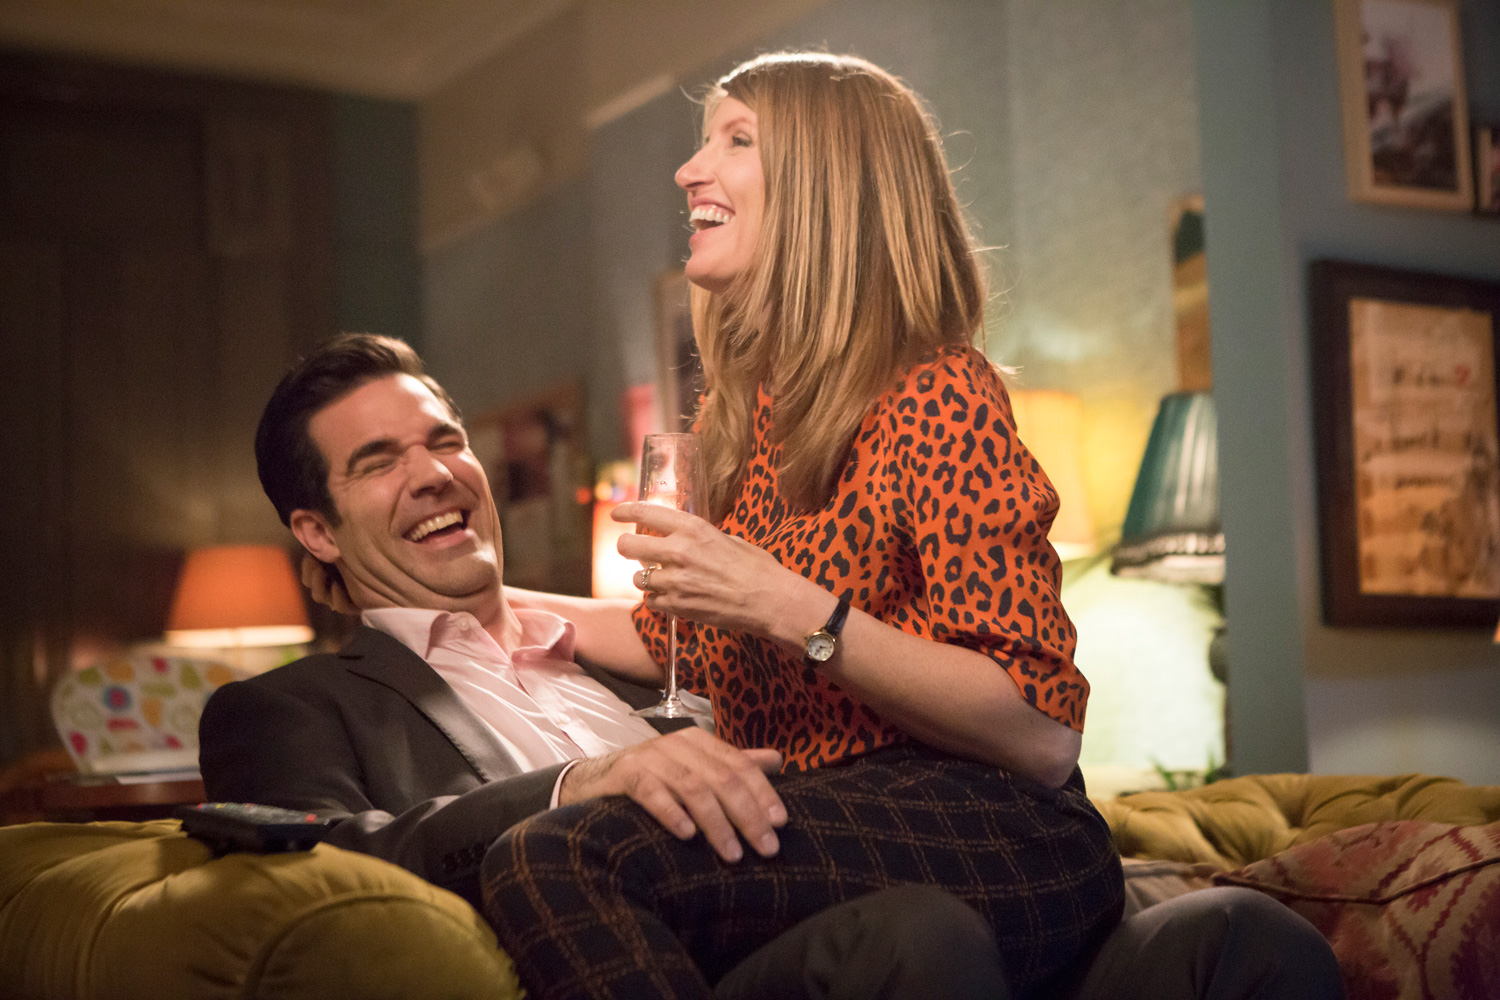 Catastrophe - Rob Delaney, Sharon Horgan